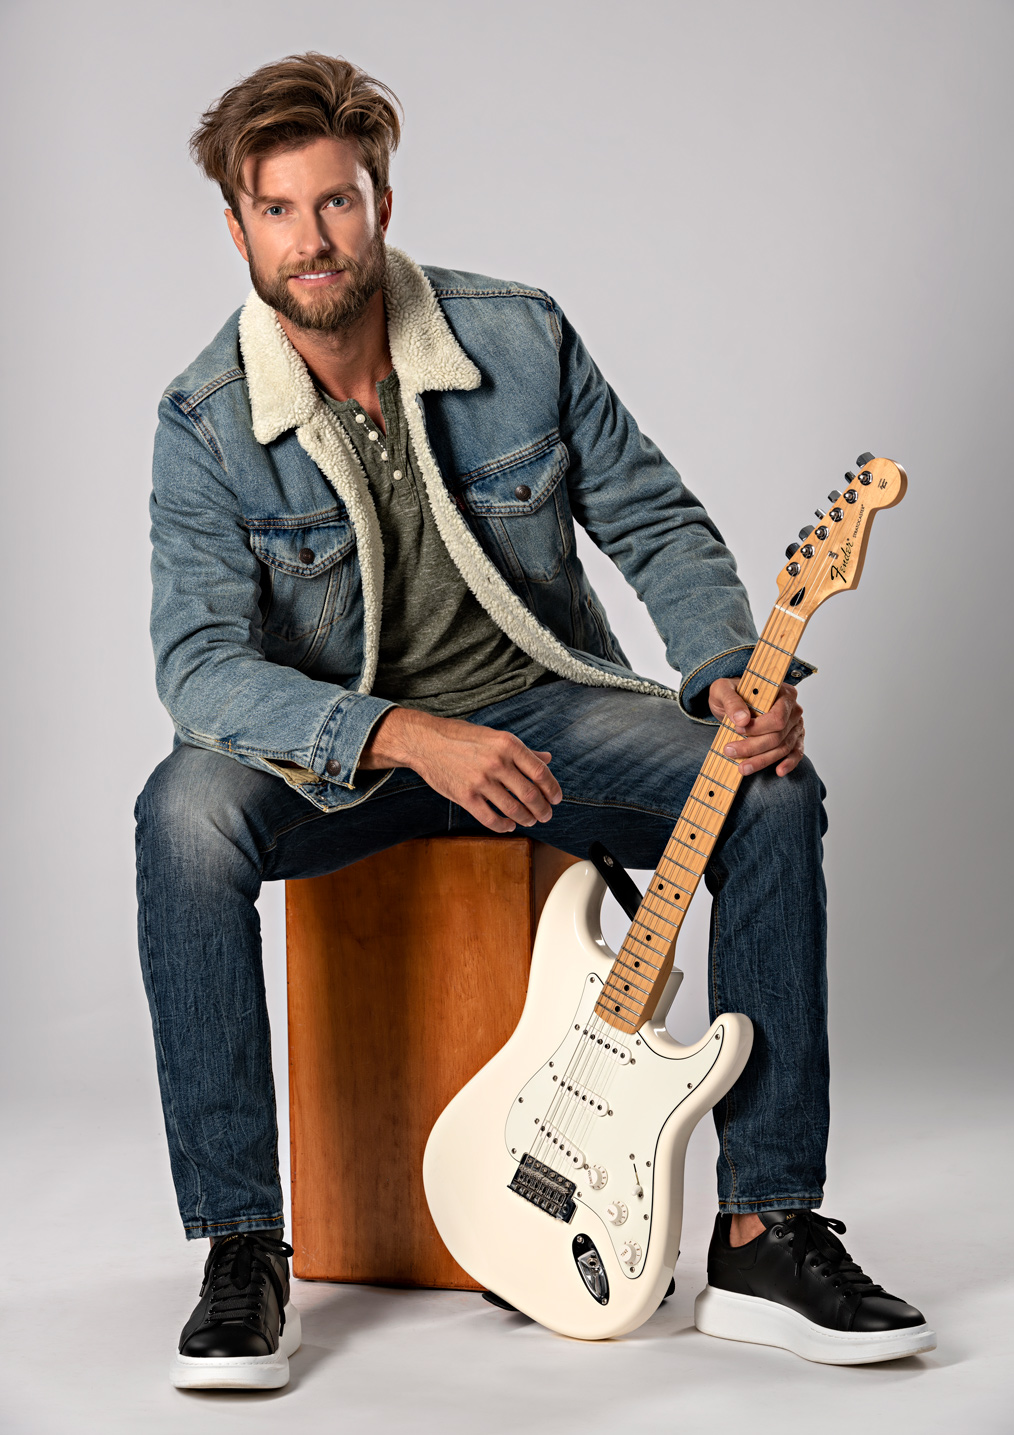 musician with a guitar for social media website